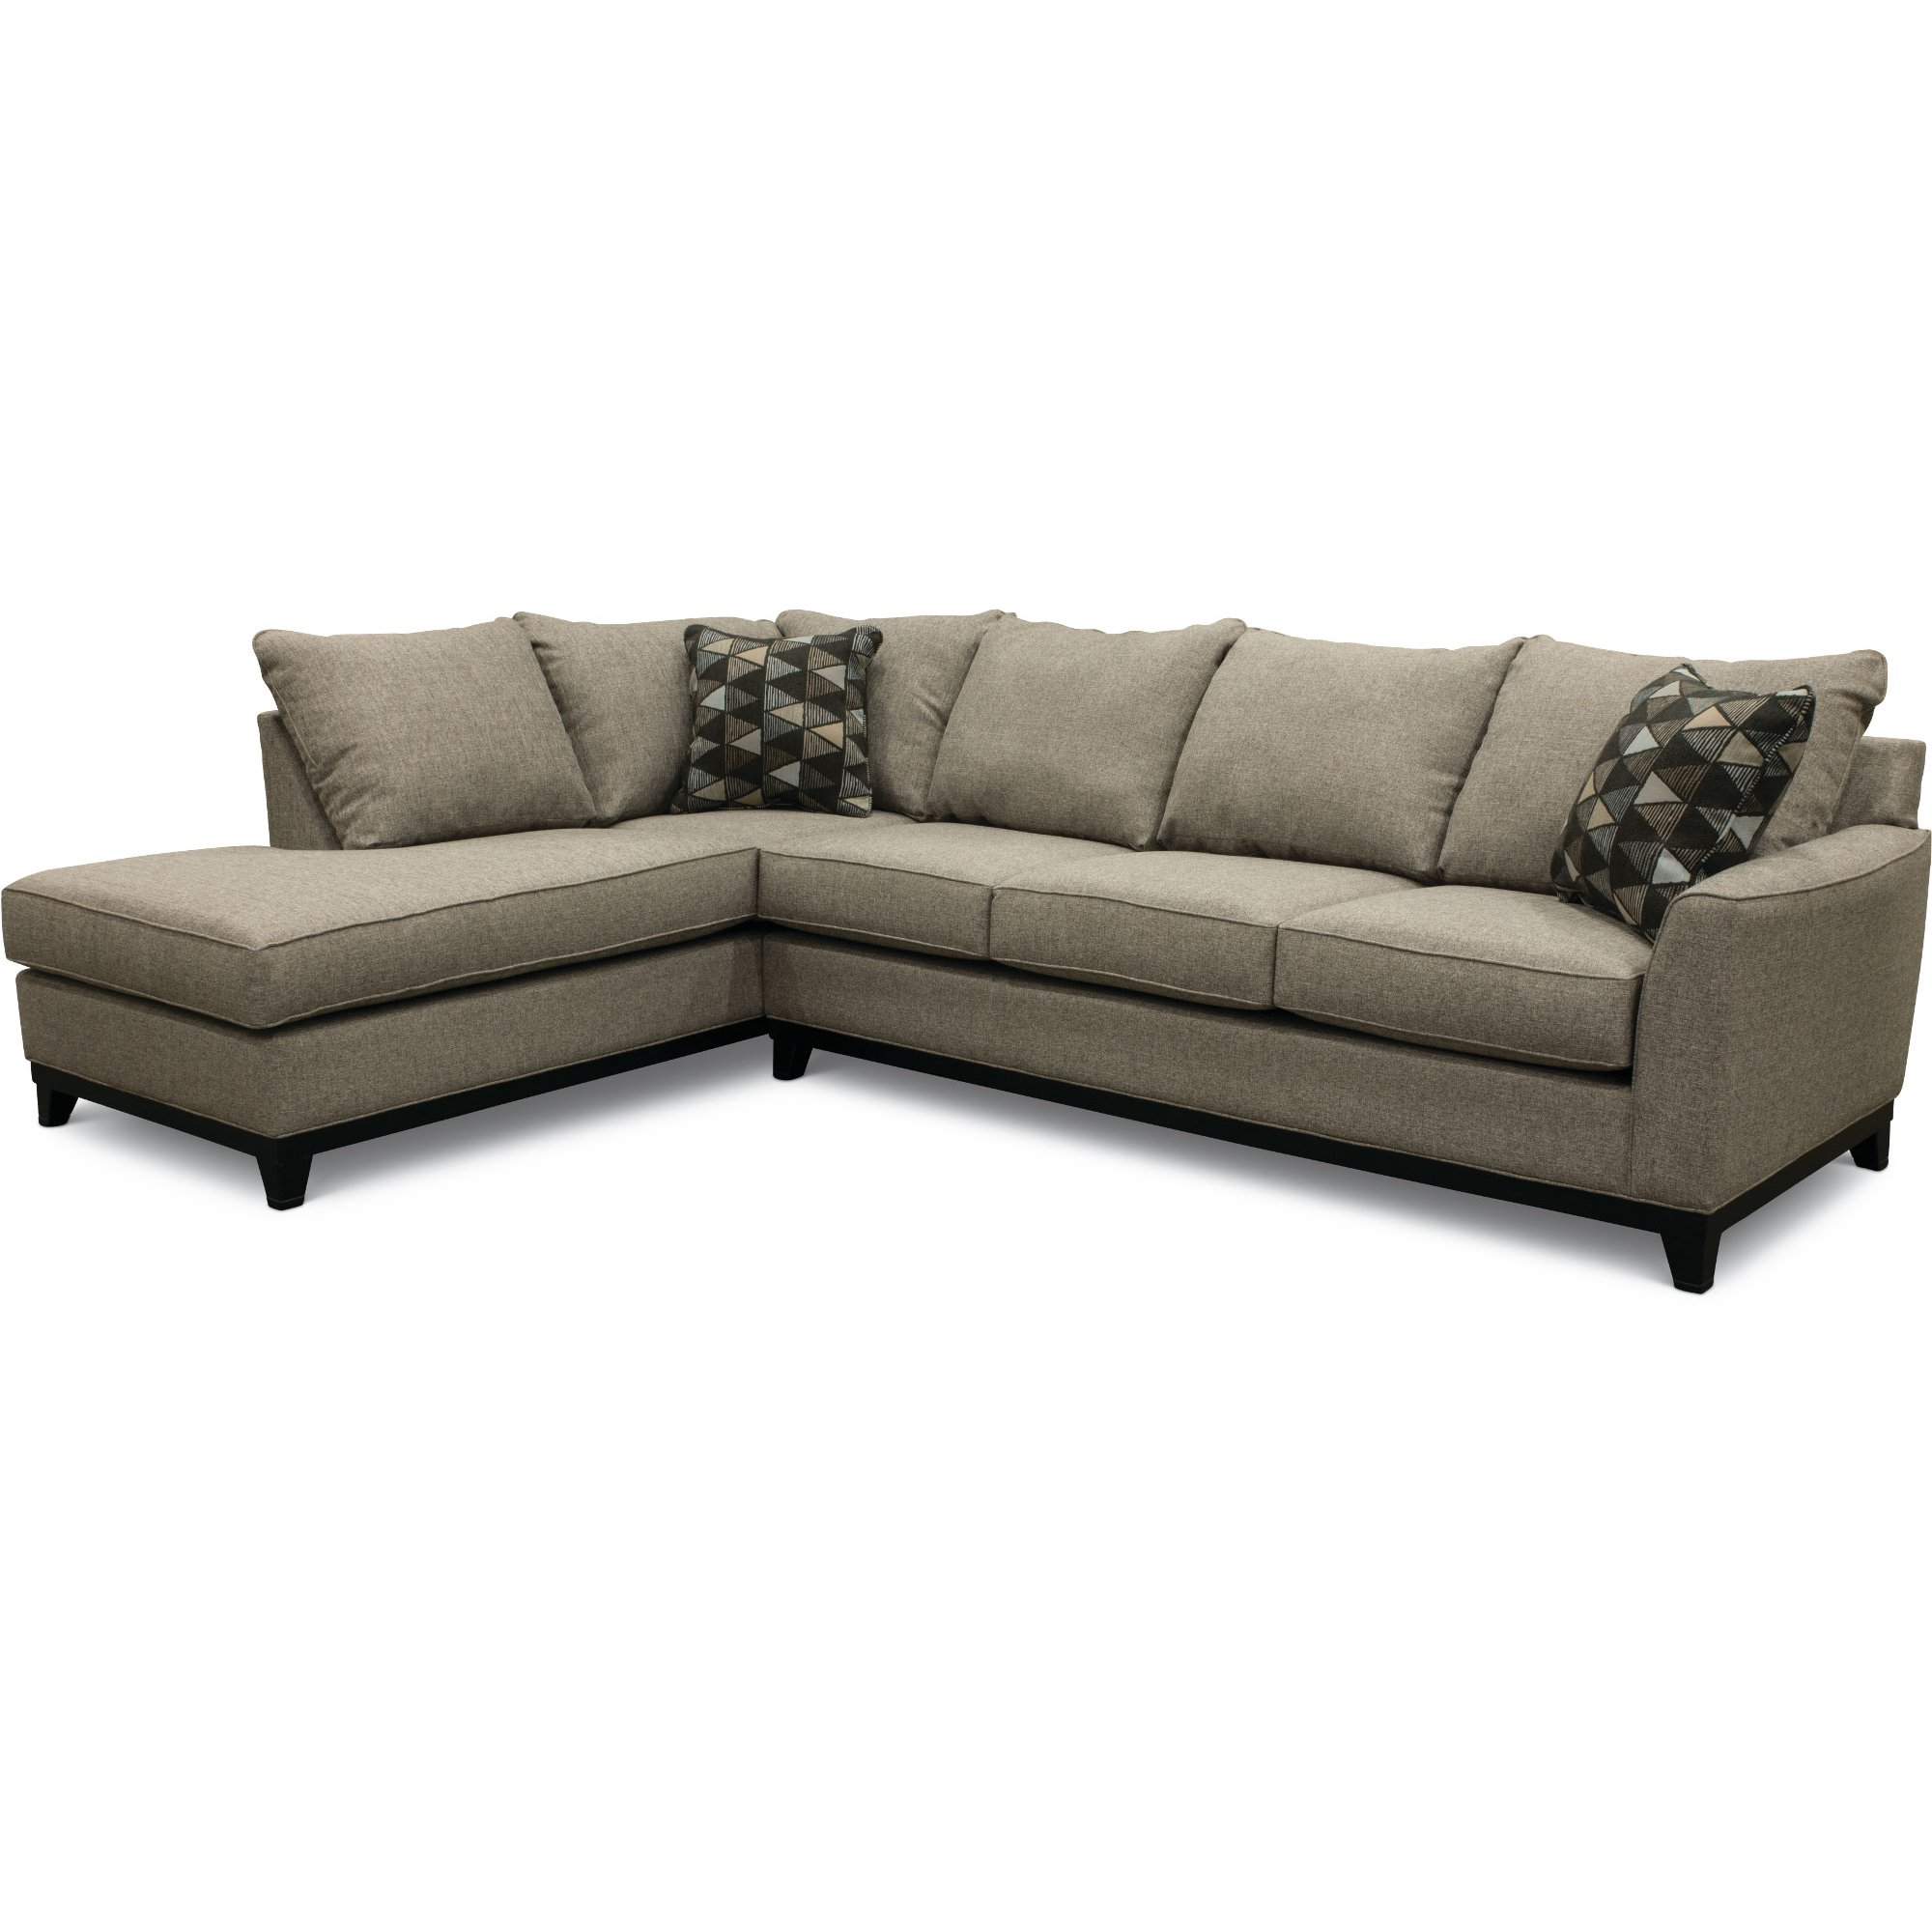 Slate Gray 2 Piece Sectional Sofa with LAF Chaise - Emerson | RC ...